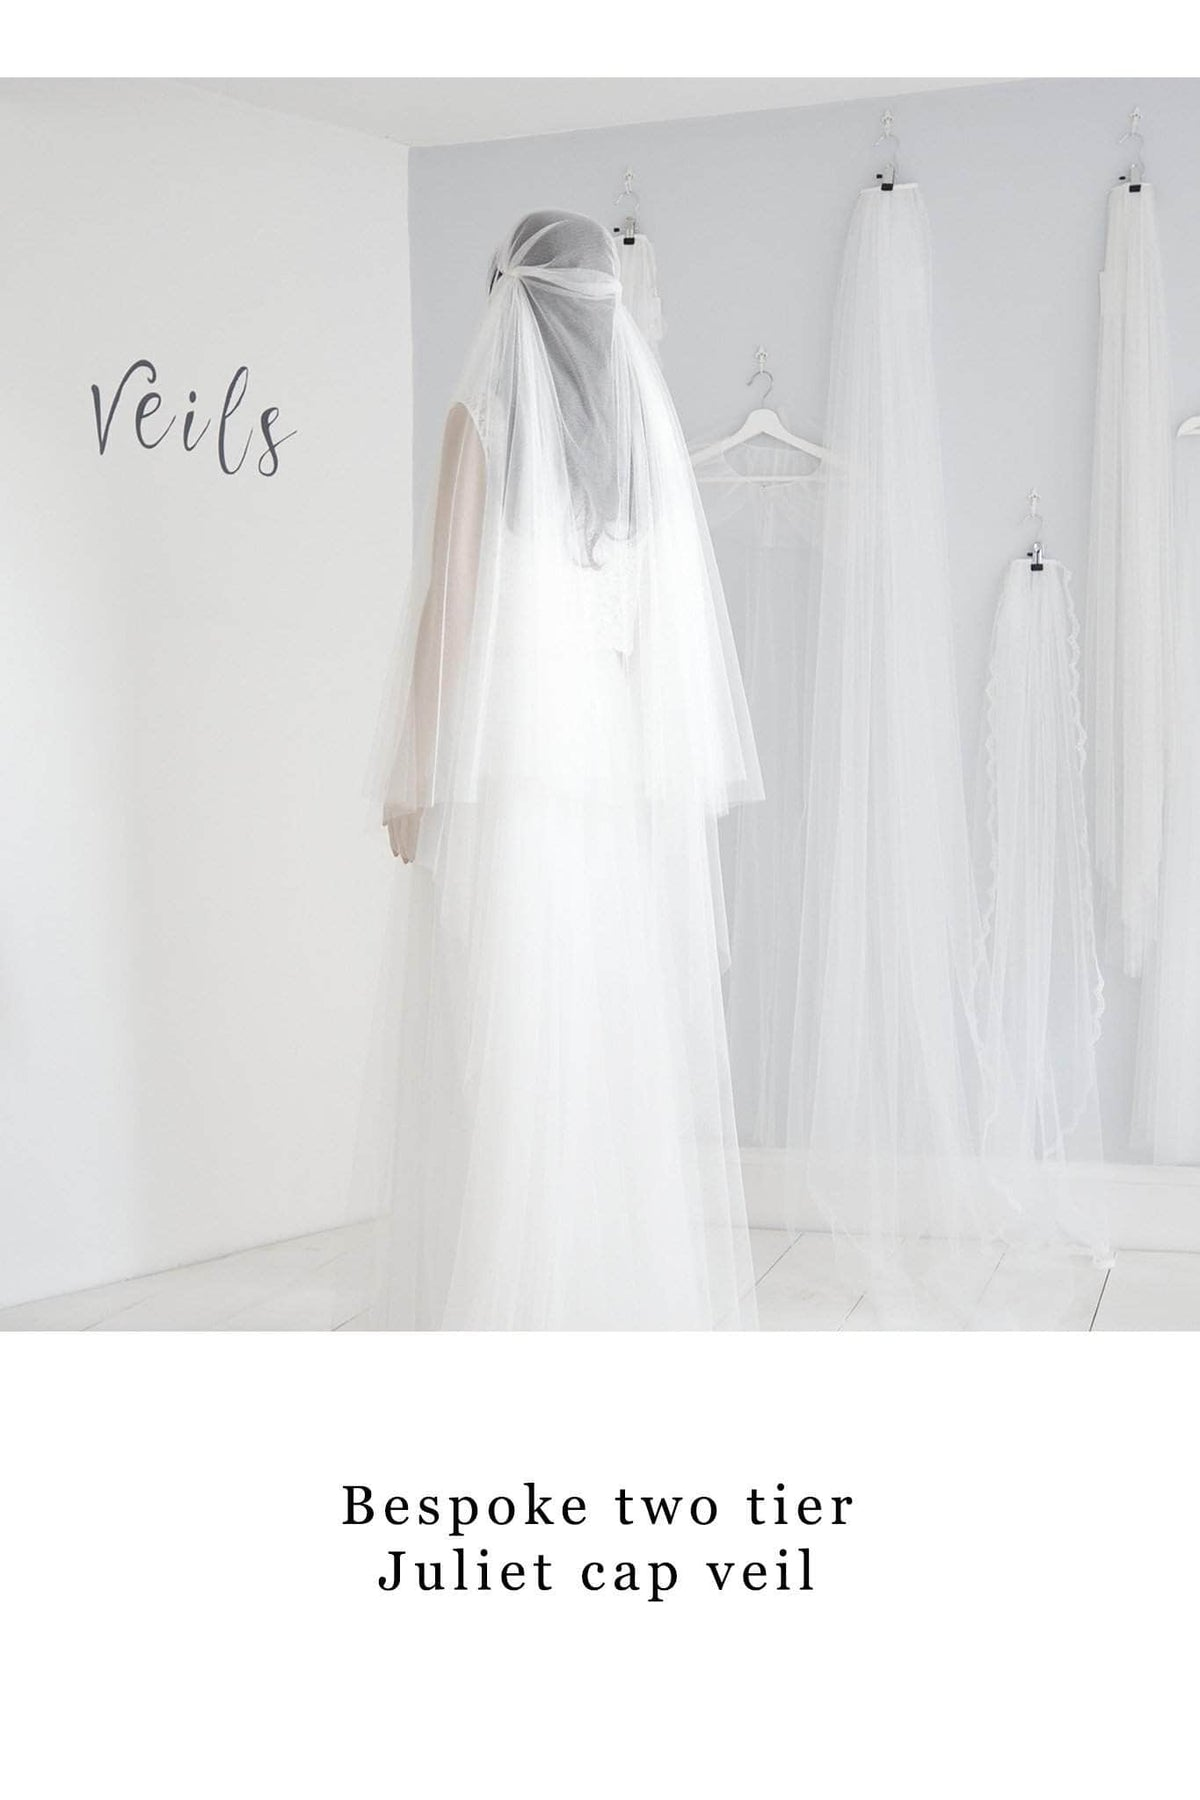 Custom Veil 'Custom veil- deposit for bespoke veil'- £50 Custom wedding veil, the bespoke veil option